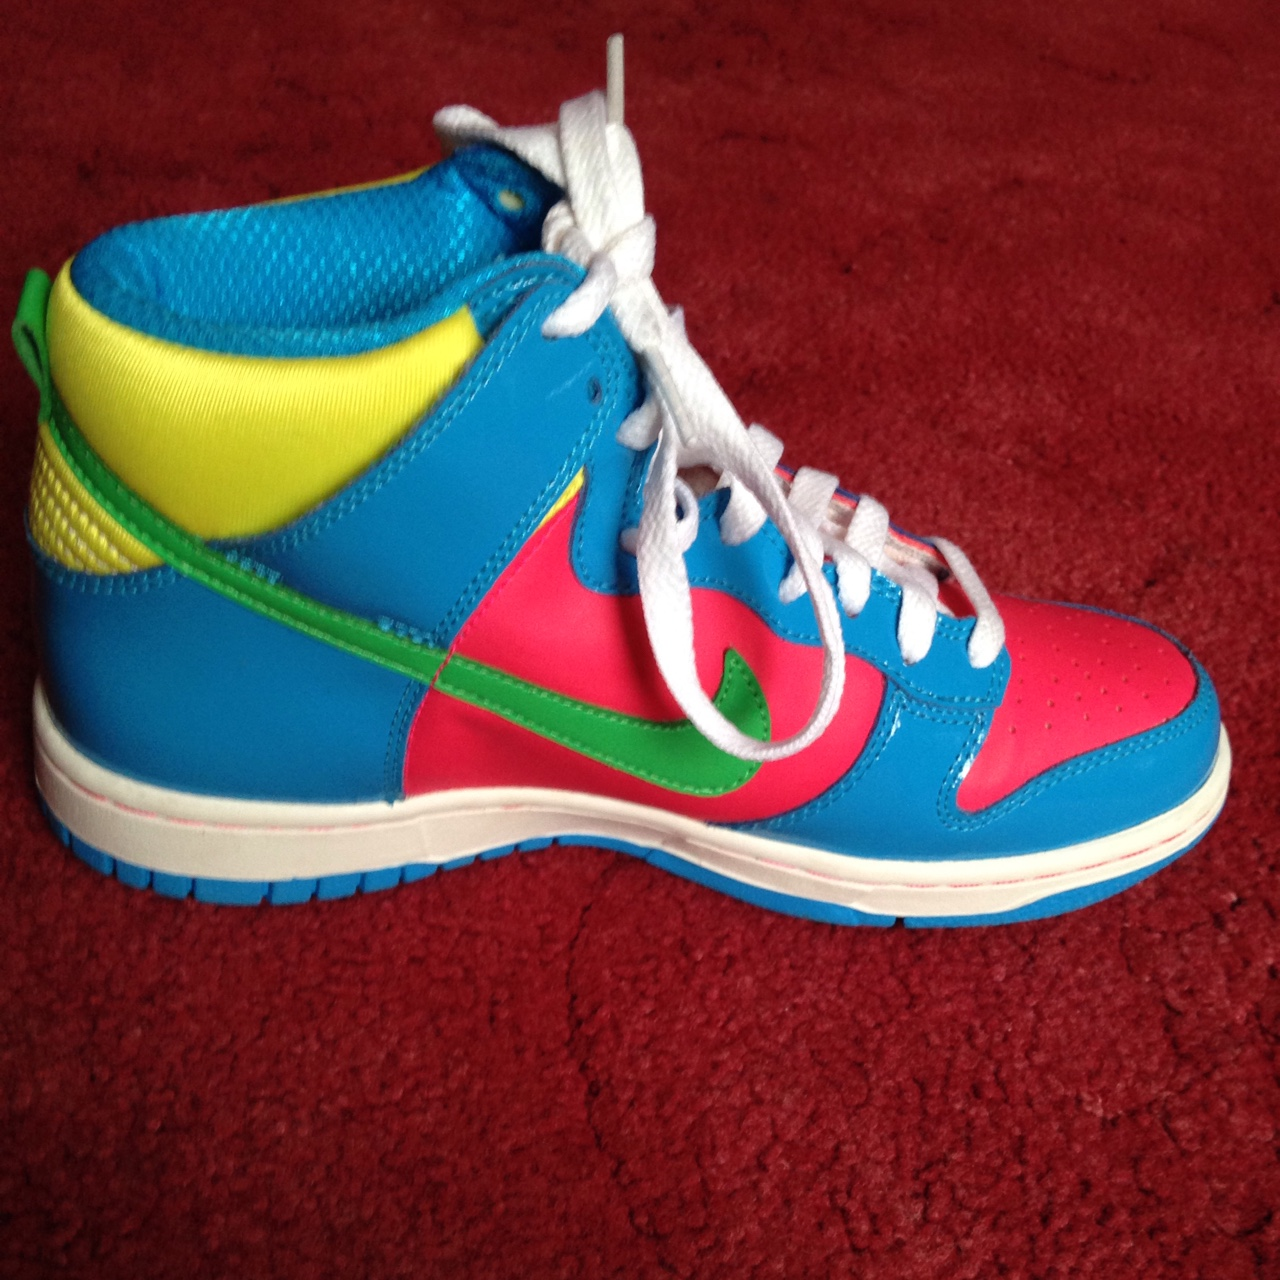 nike high top multicolor Shop Clothing